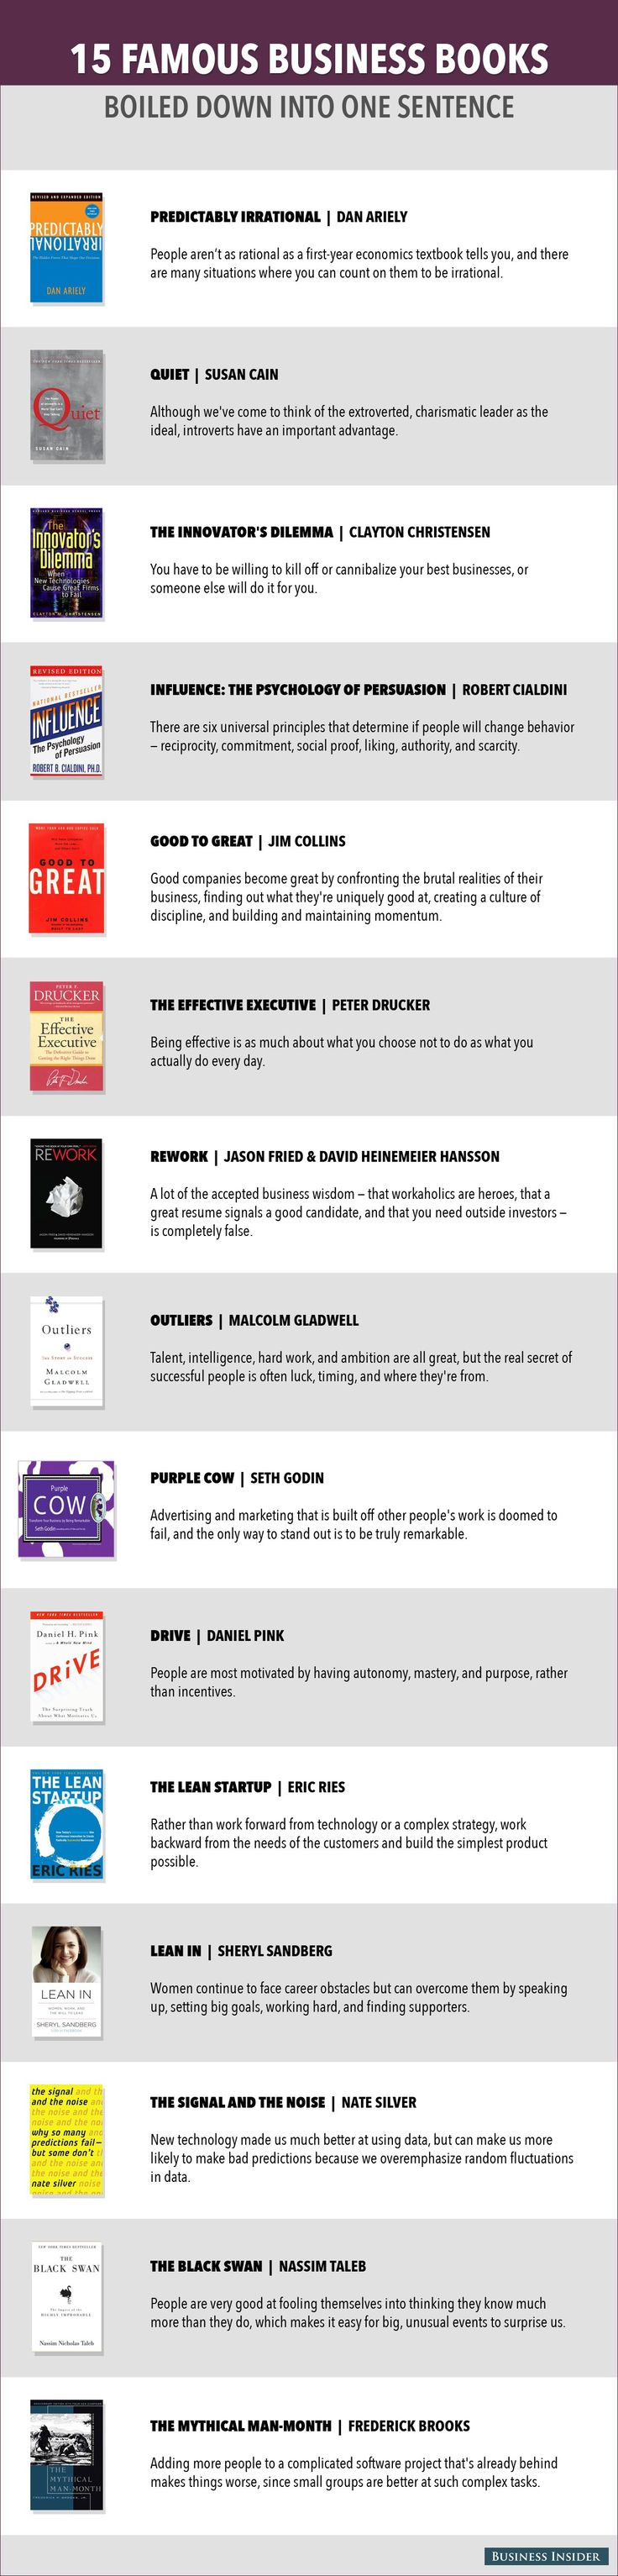 Best 25 Summaries Of Books Ideas On Pinterest Summary Writing